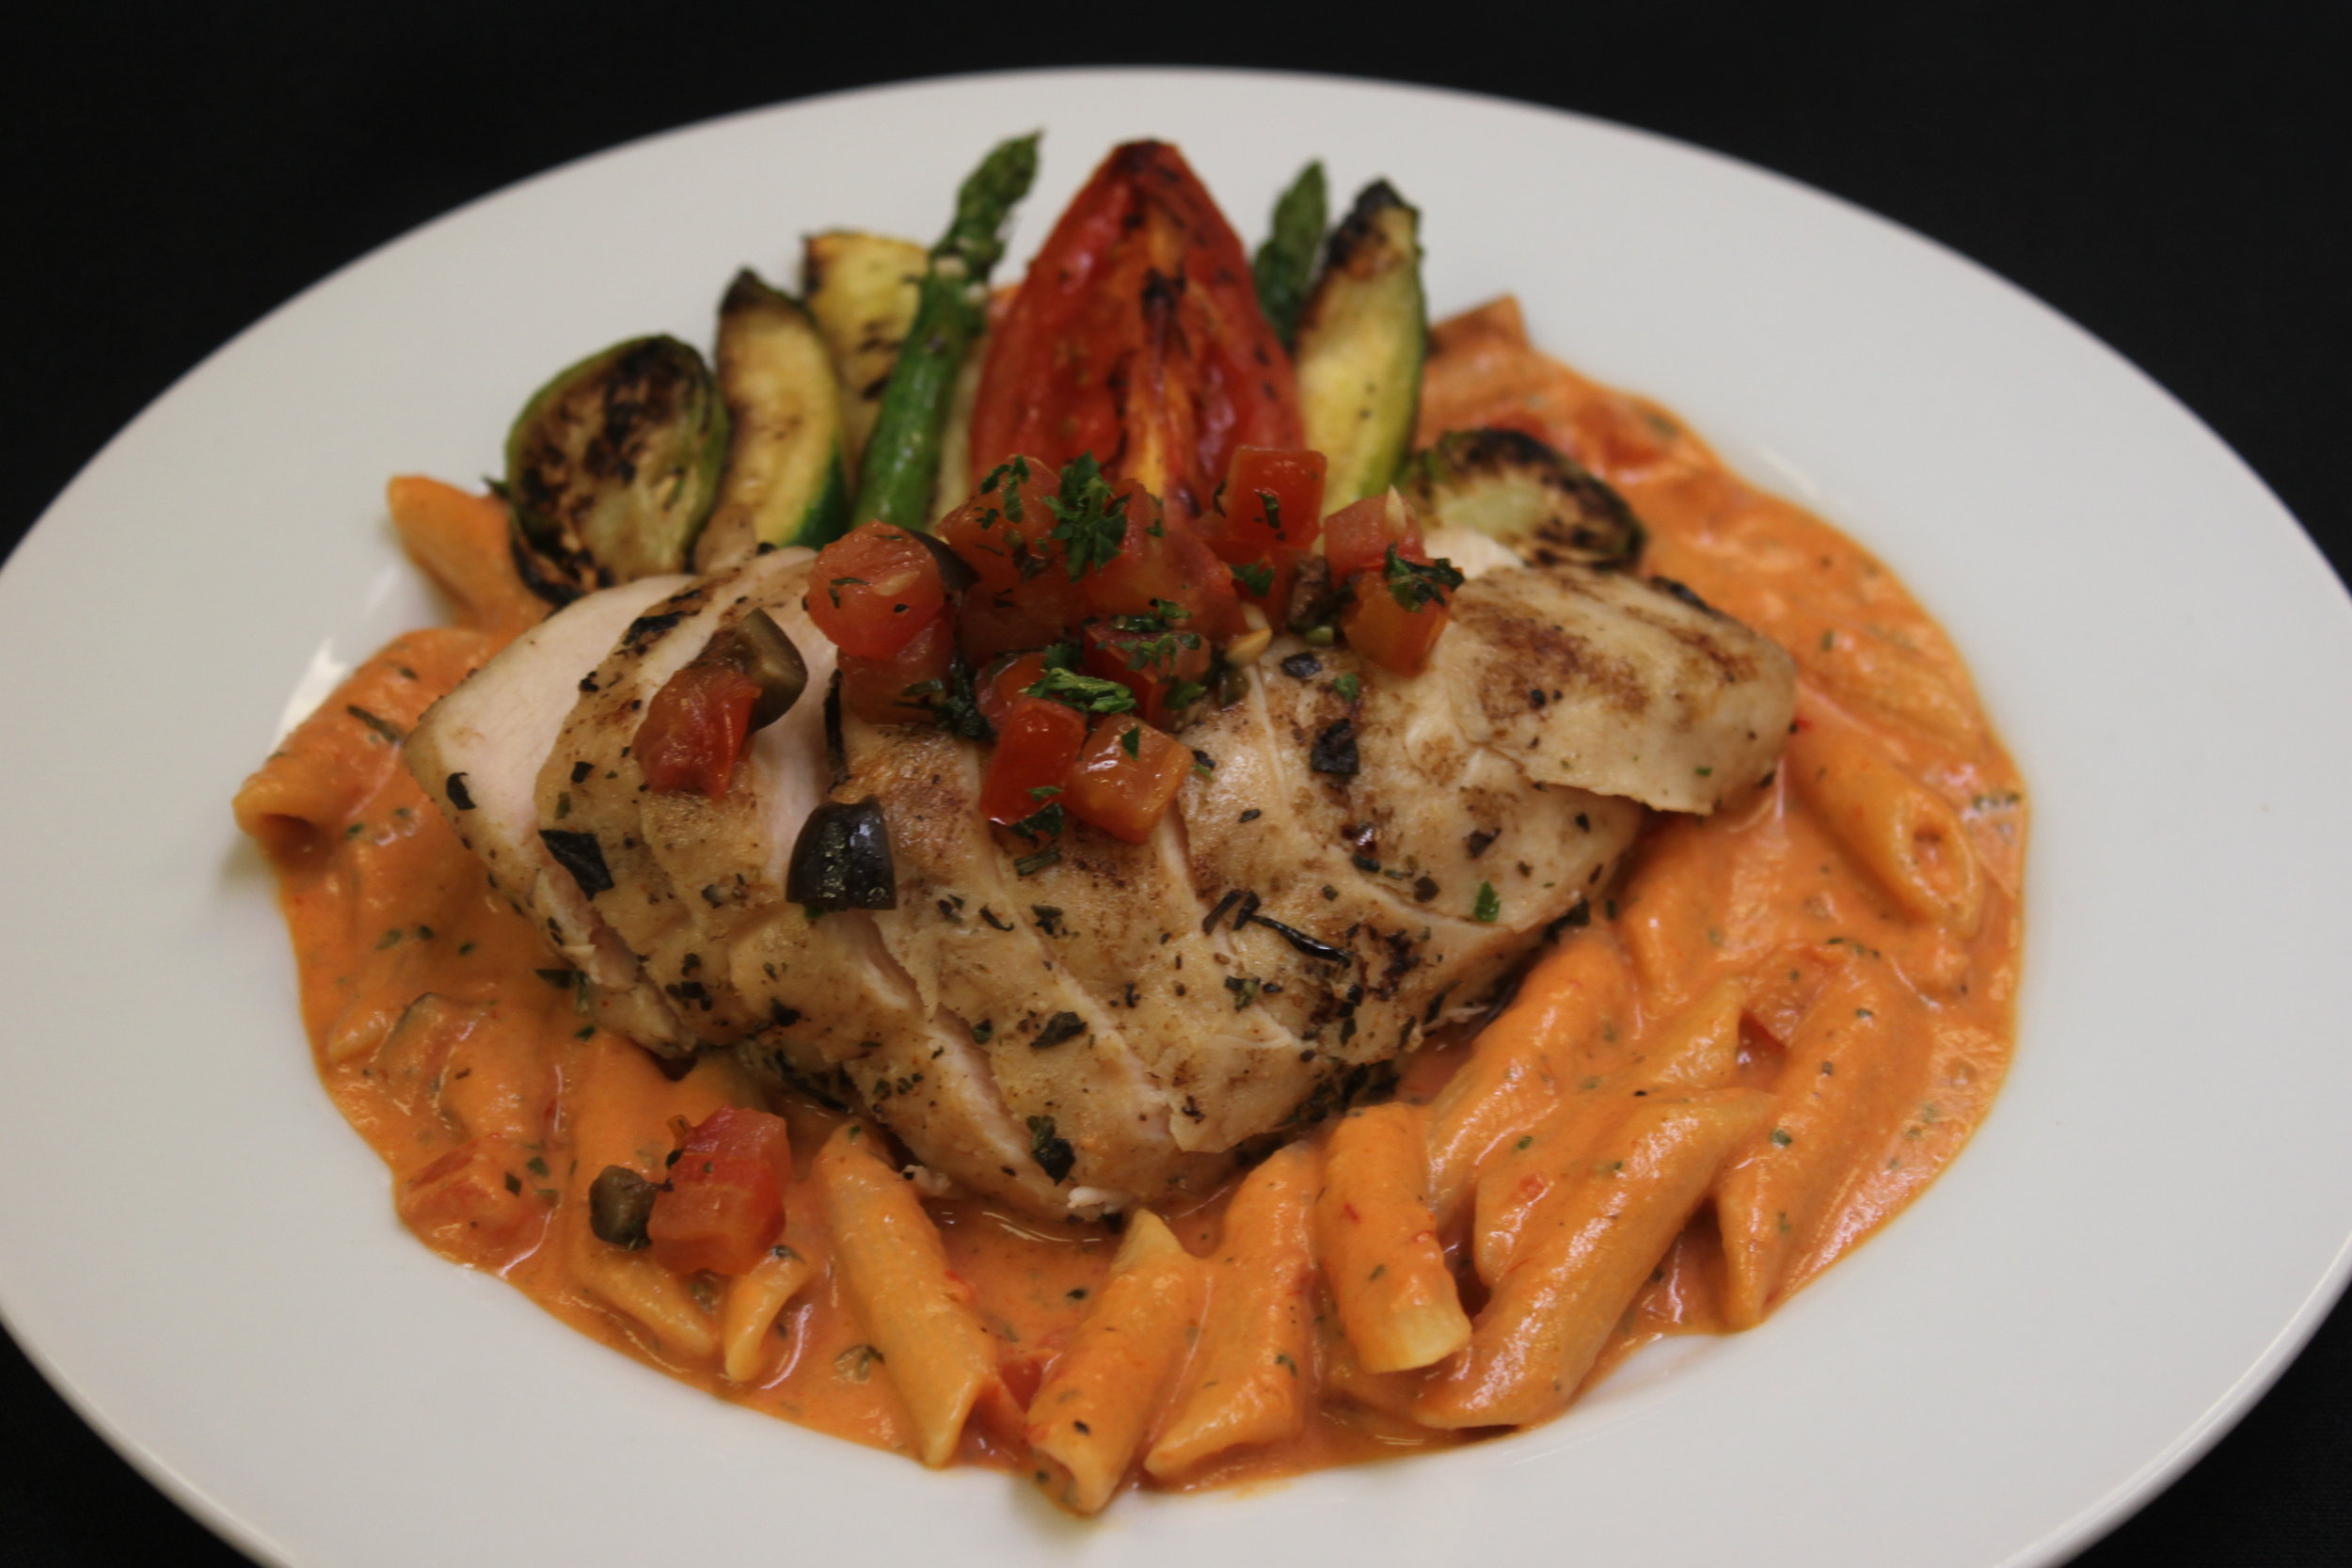 Penne Mozzarella Pasta Topped with Grilled Mediterranean Herb Chicken Breast, and Grilled Vegetable Medley